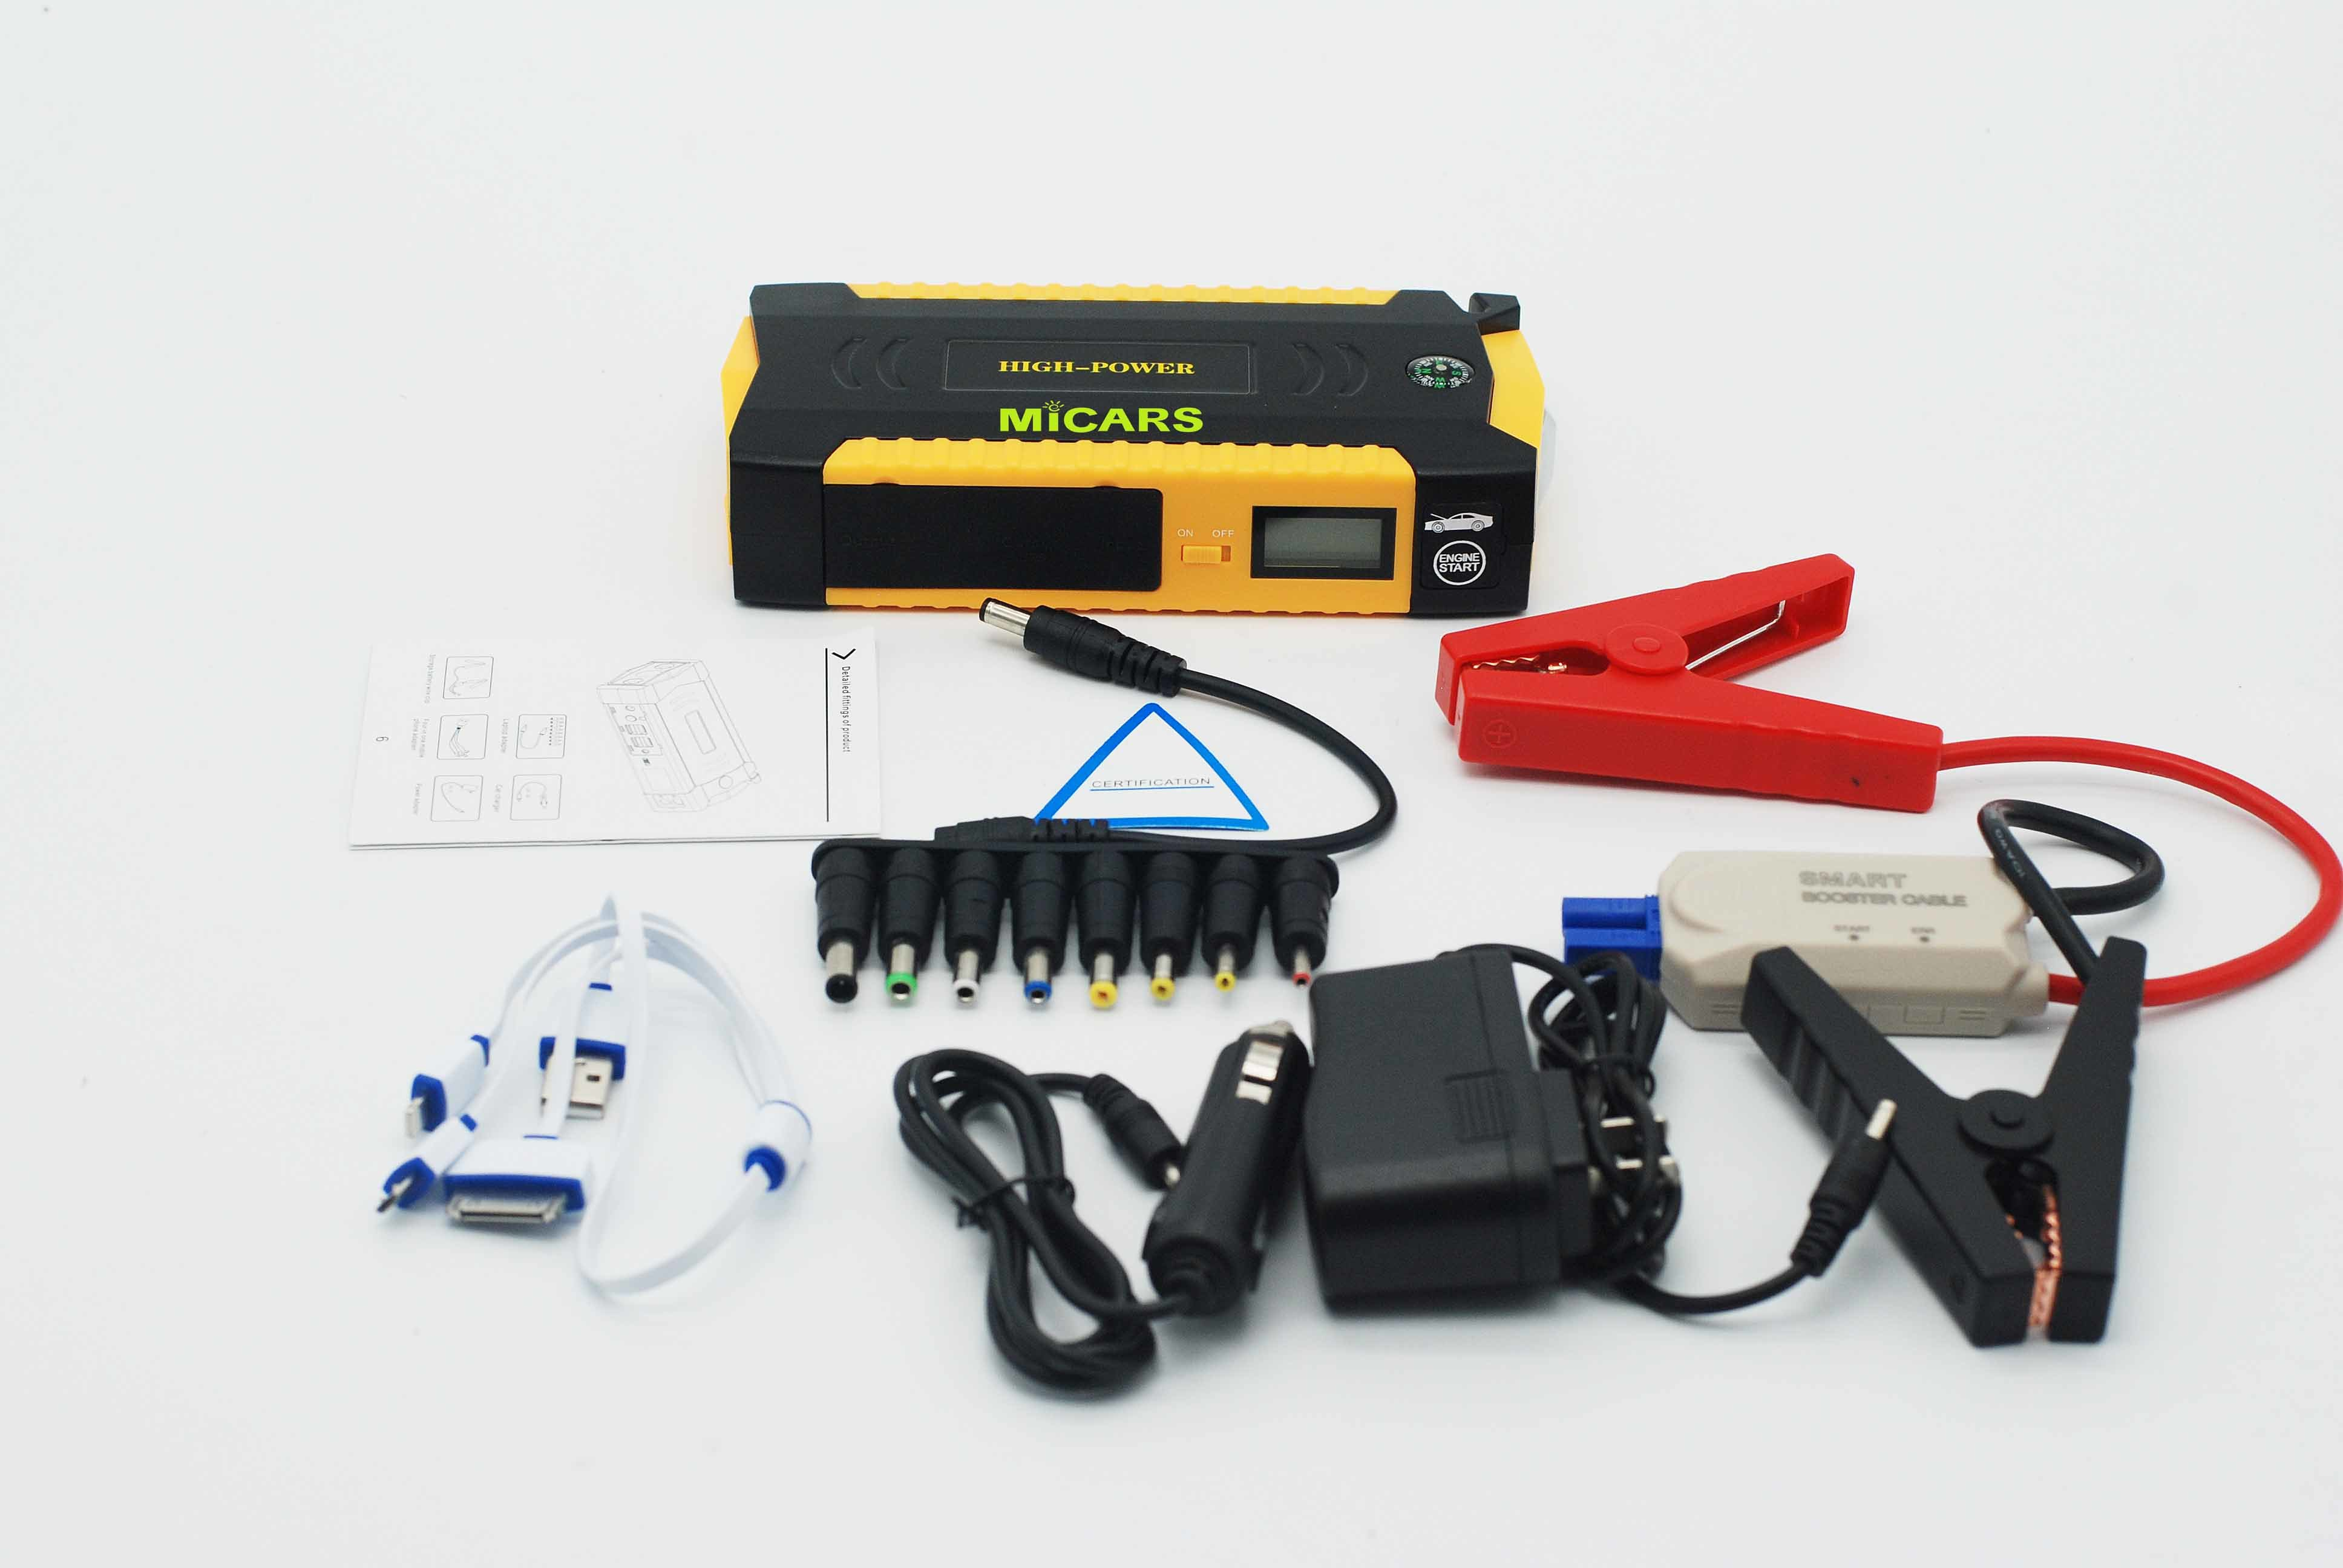 2017 New Upgrade High Power 20800mAh 5.0L Gasoline& 3.0L Diesel Oil Battery Car Jump Starter